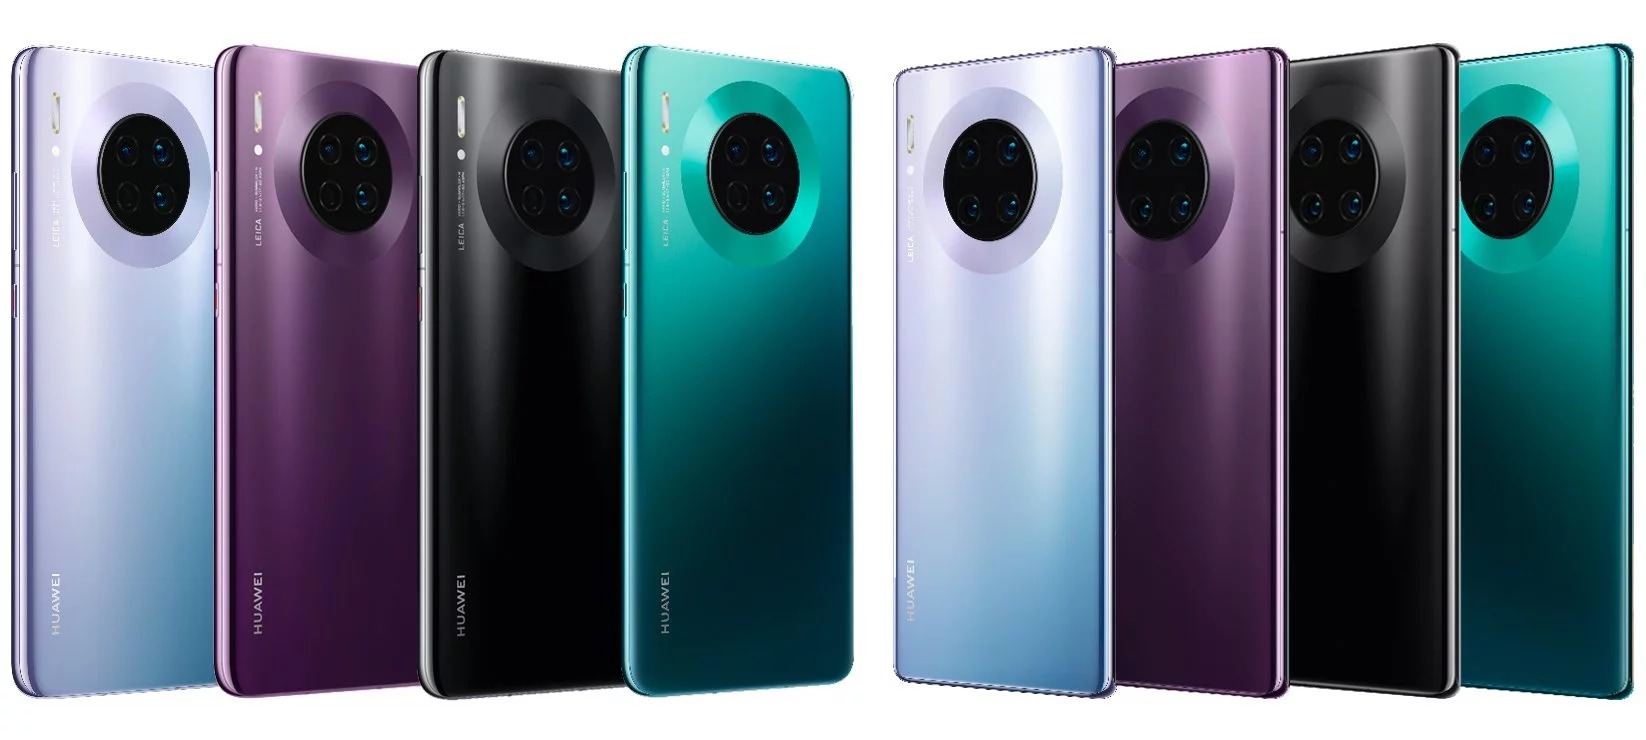 cores do Huawei Mate 30